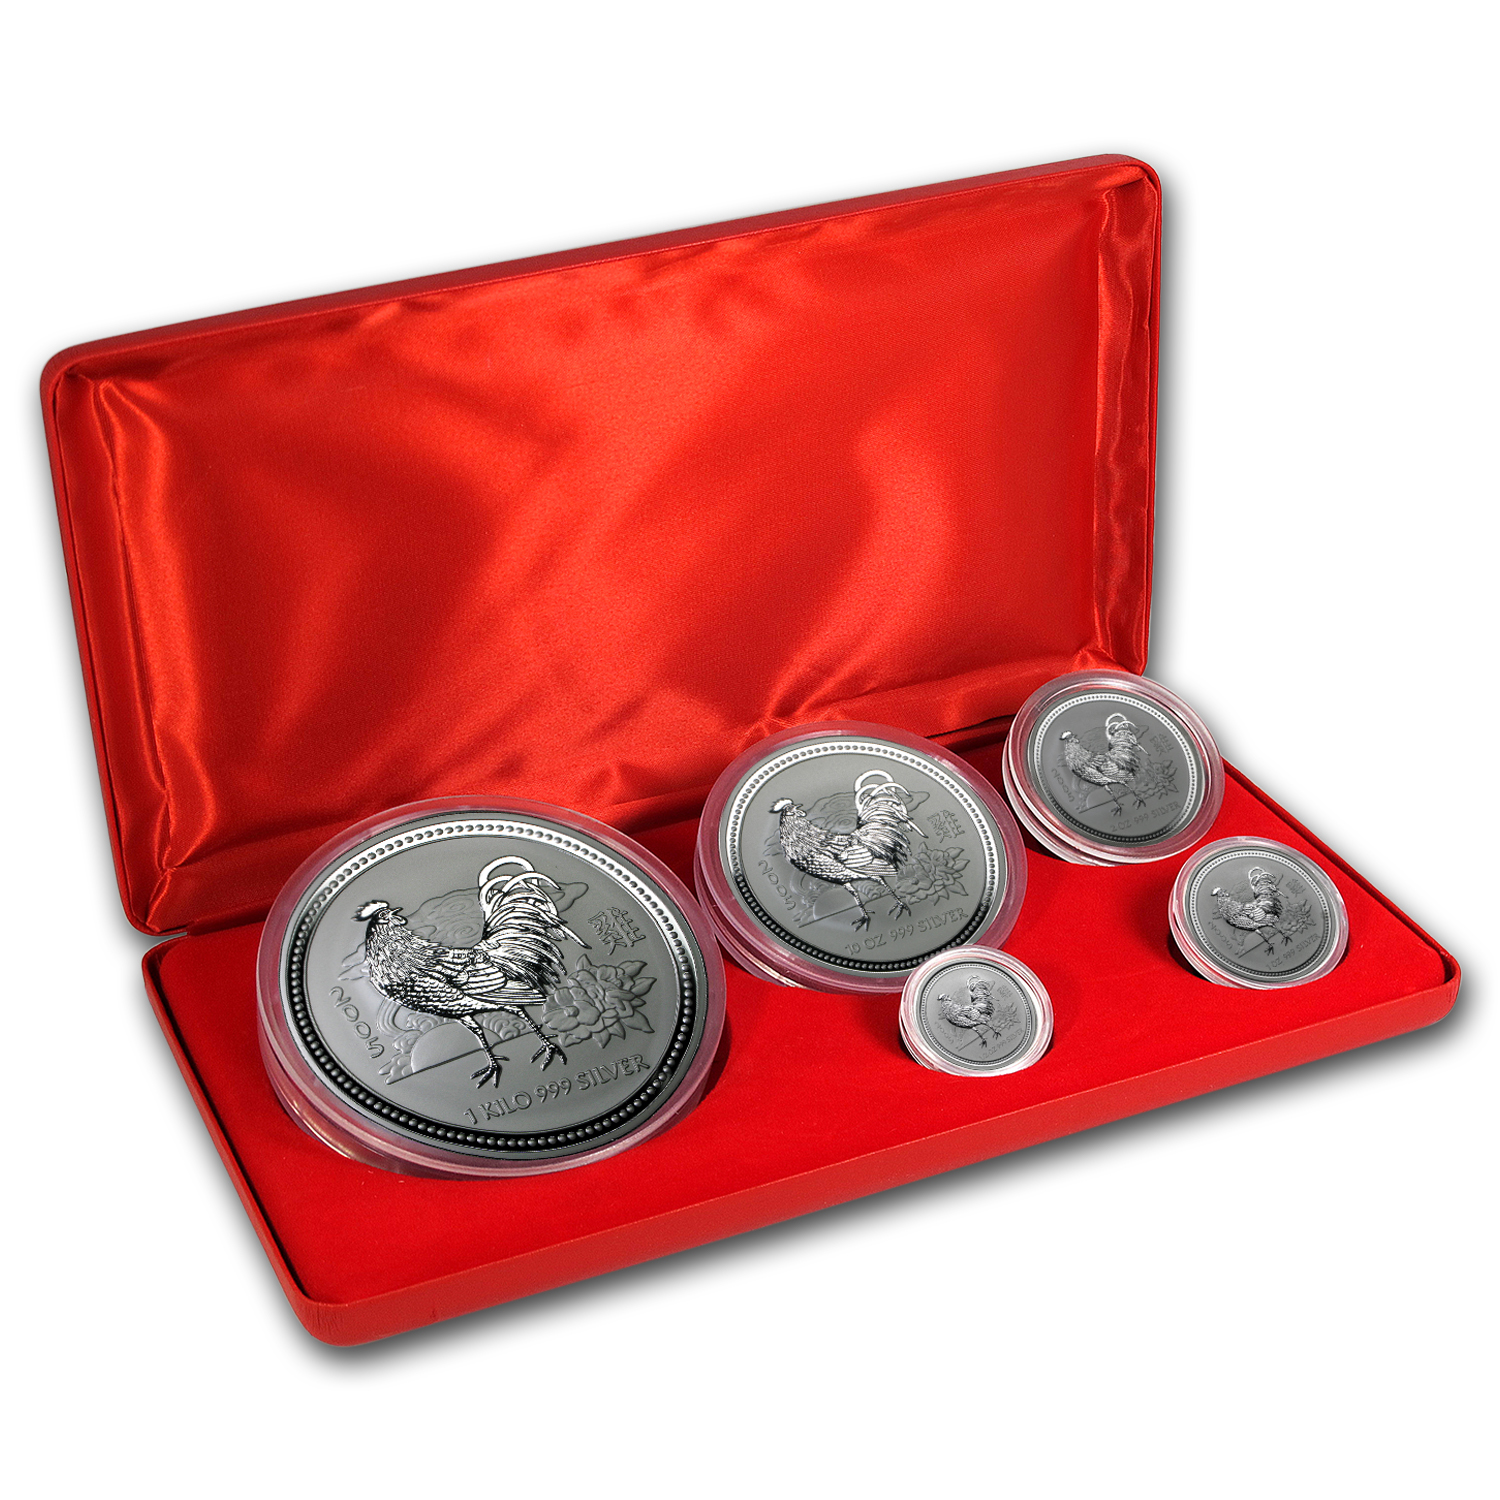 2005 Australia 5-Coin Silver Rooster BU Set